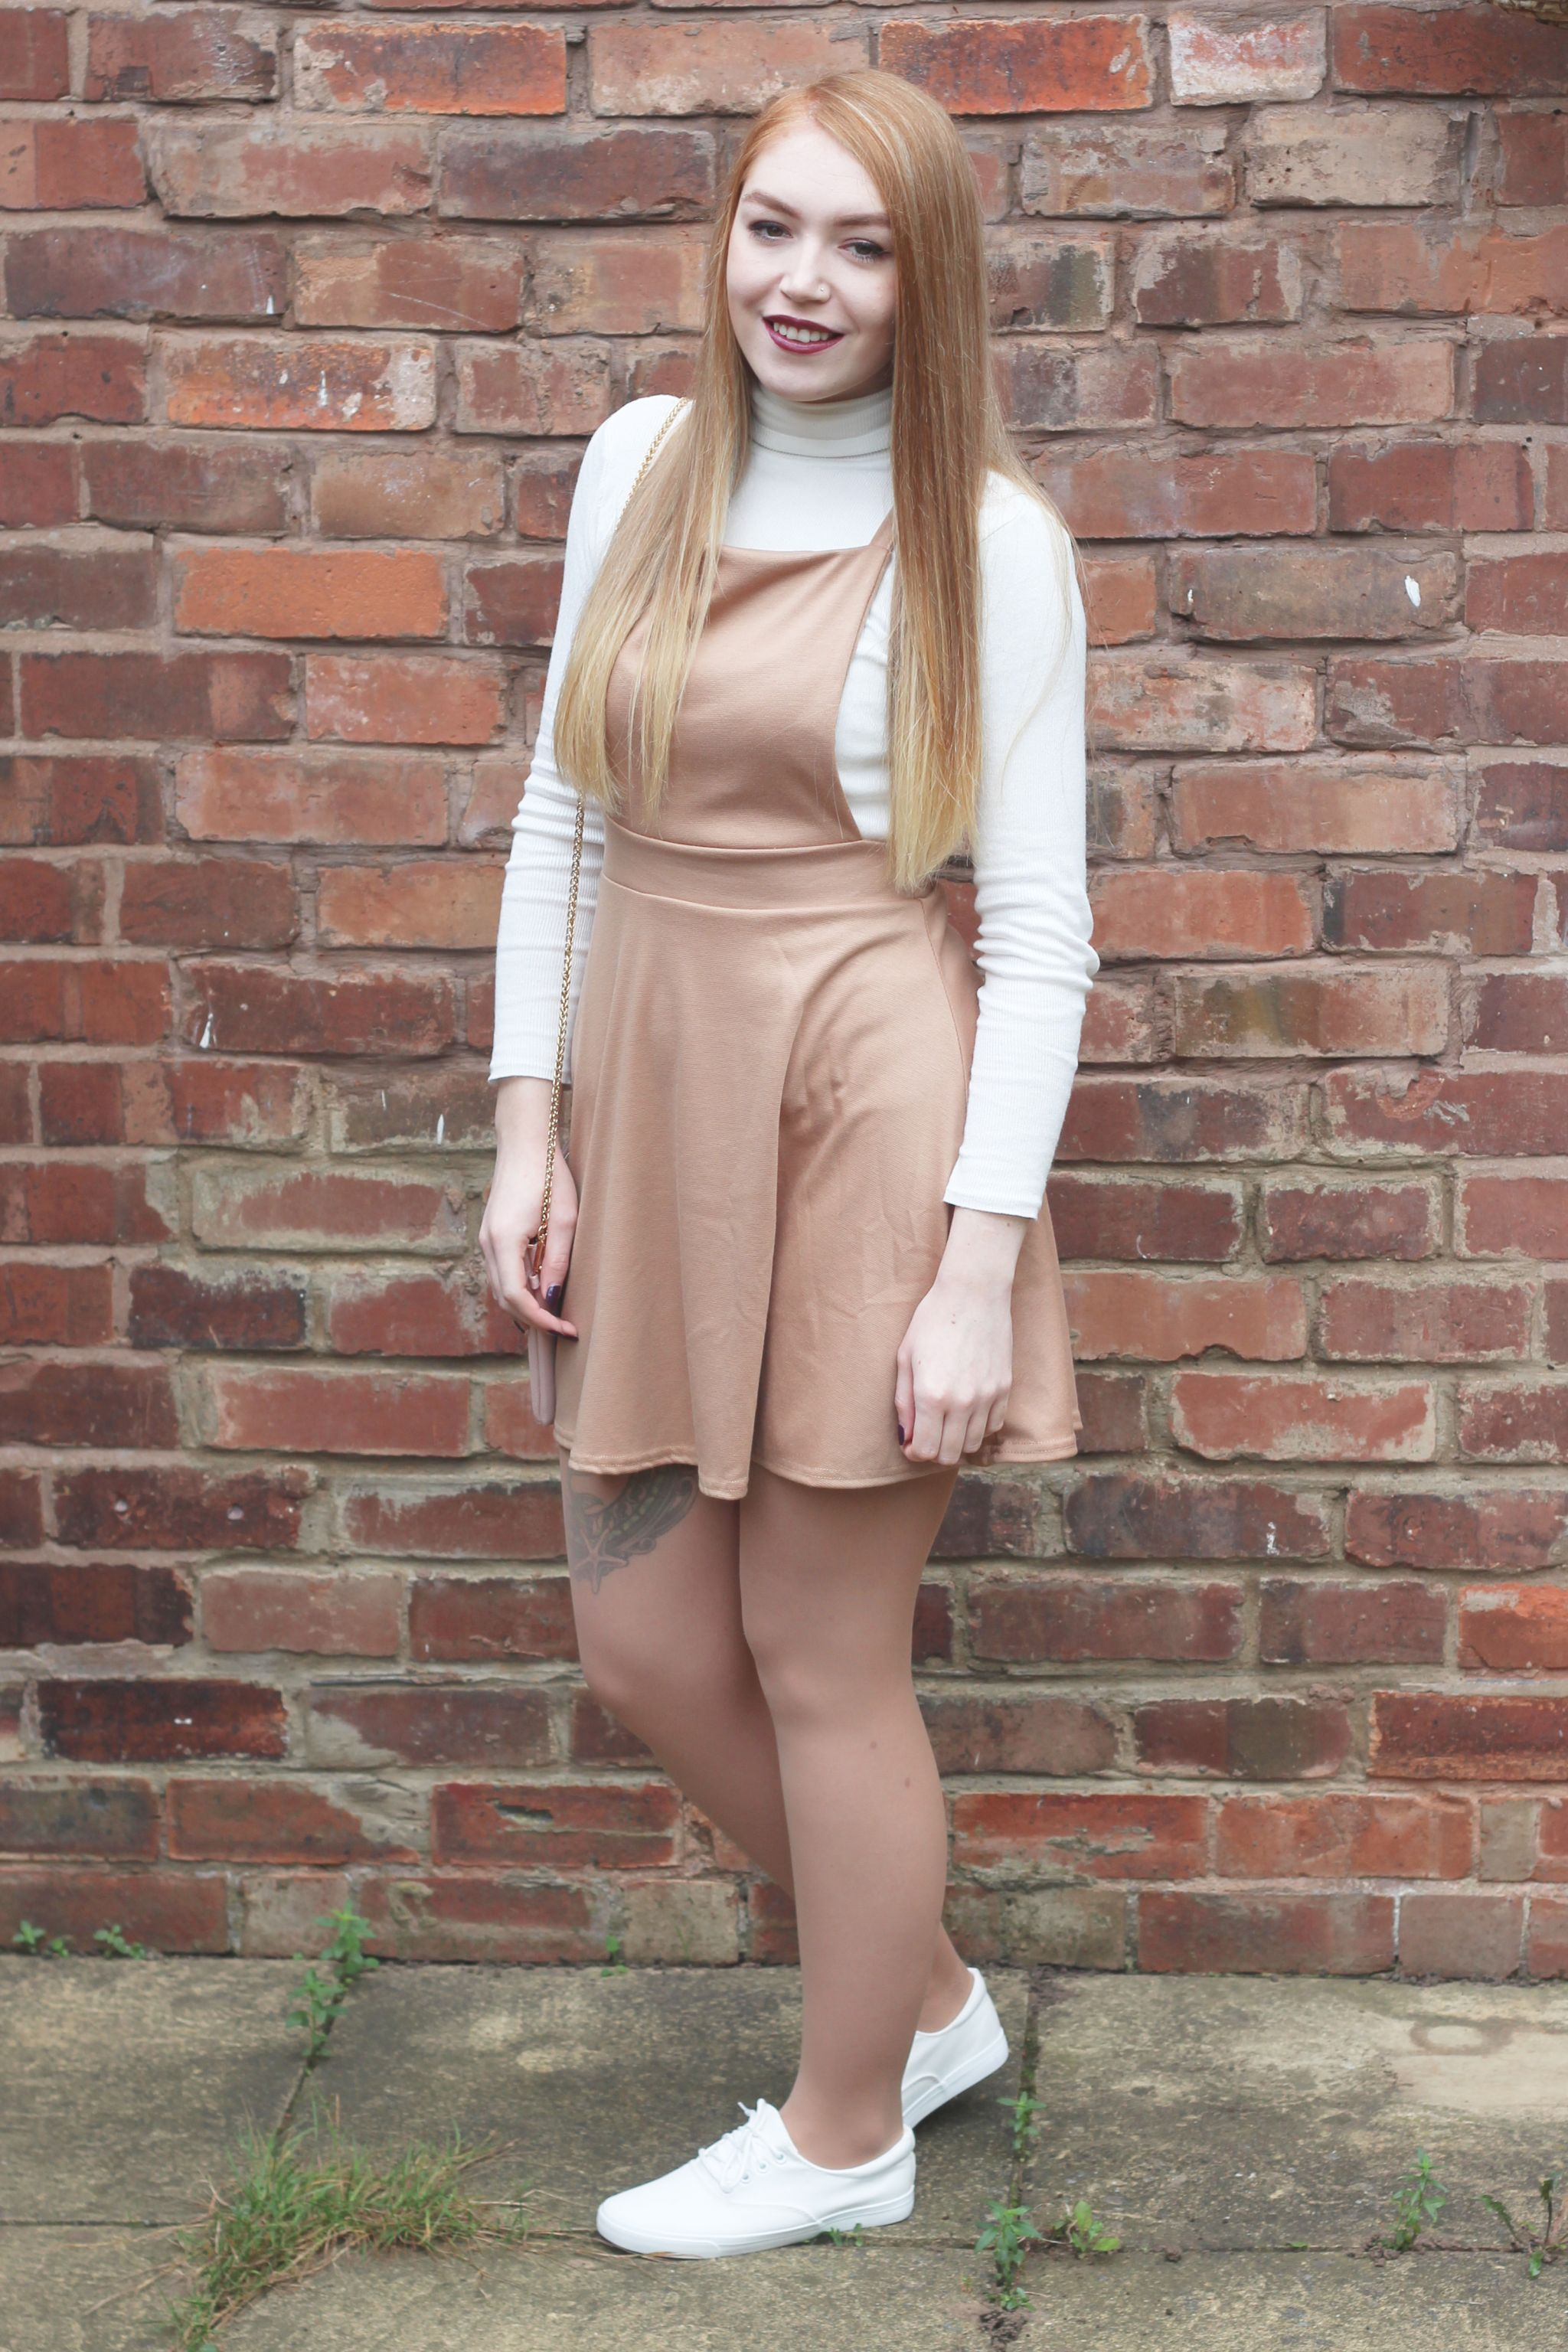 Boohoo Meal Deal Me in Camel Pinafore Dress Brick Wall